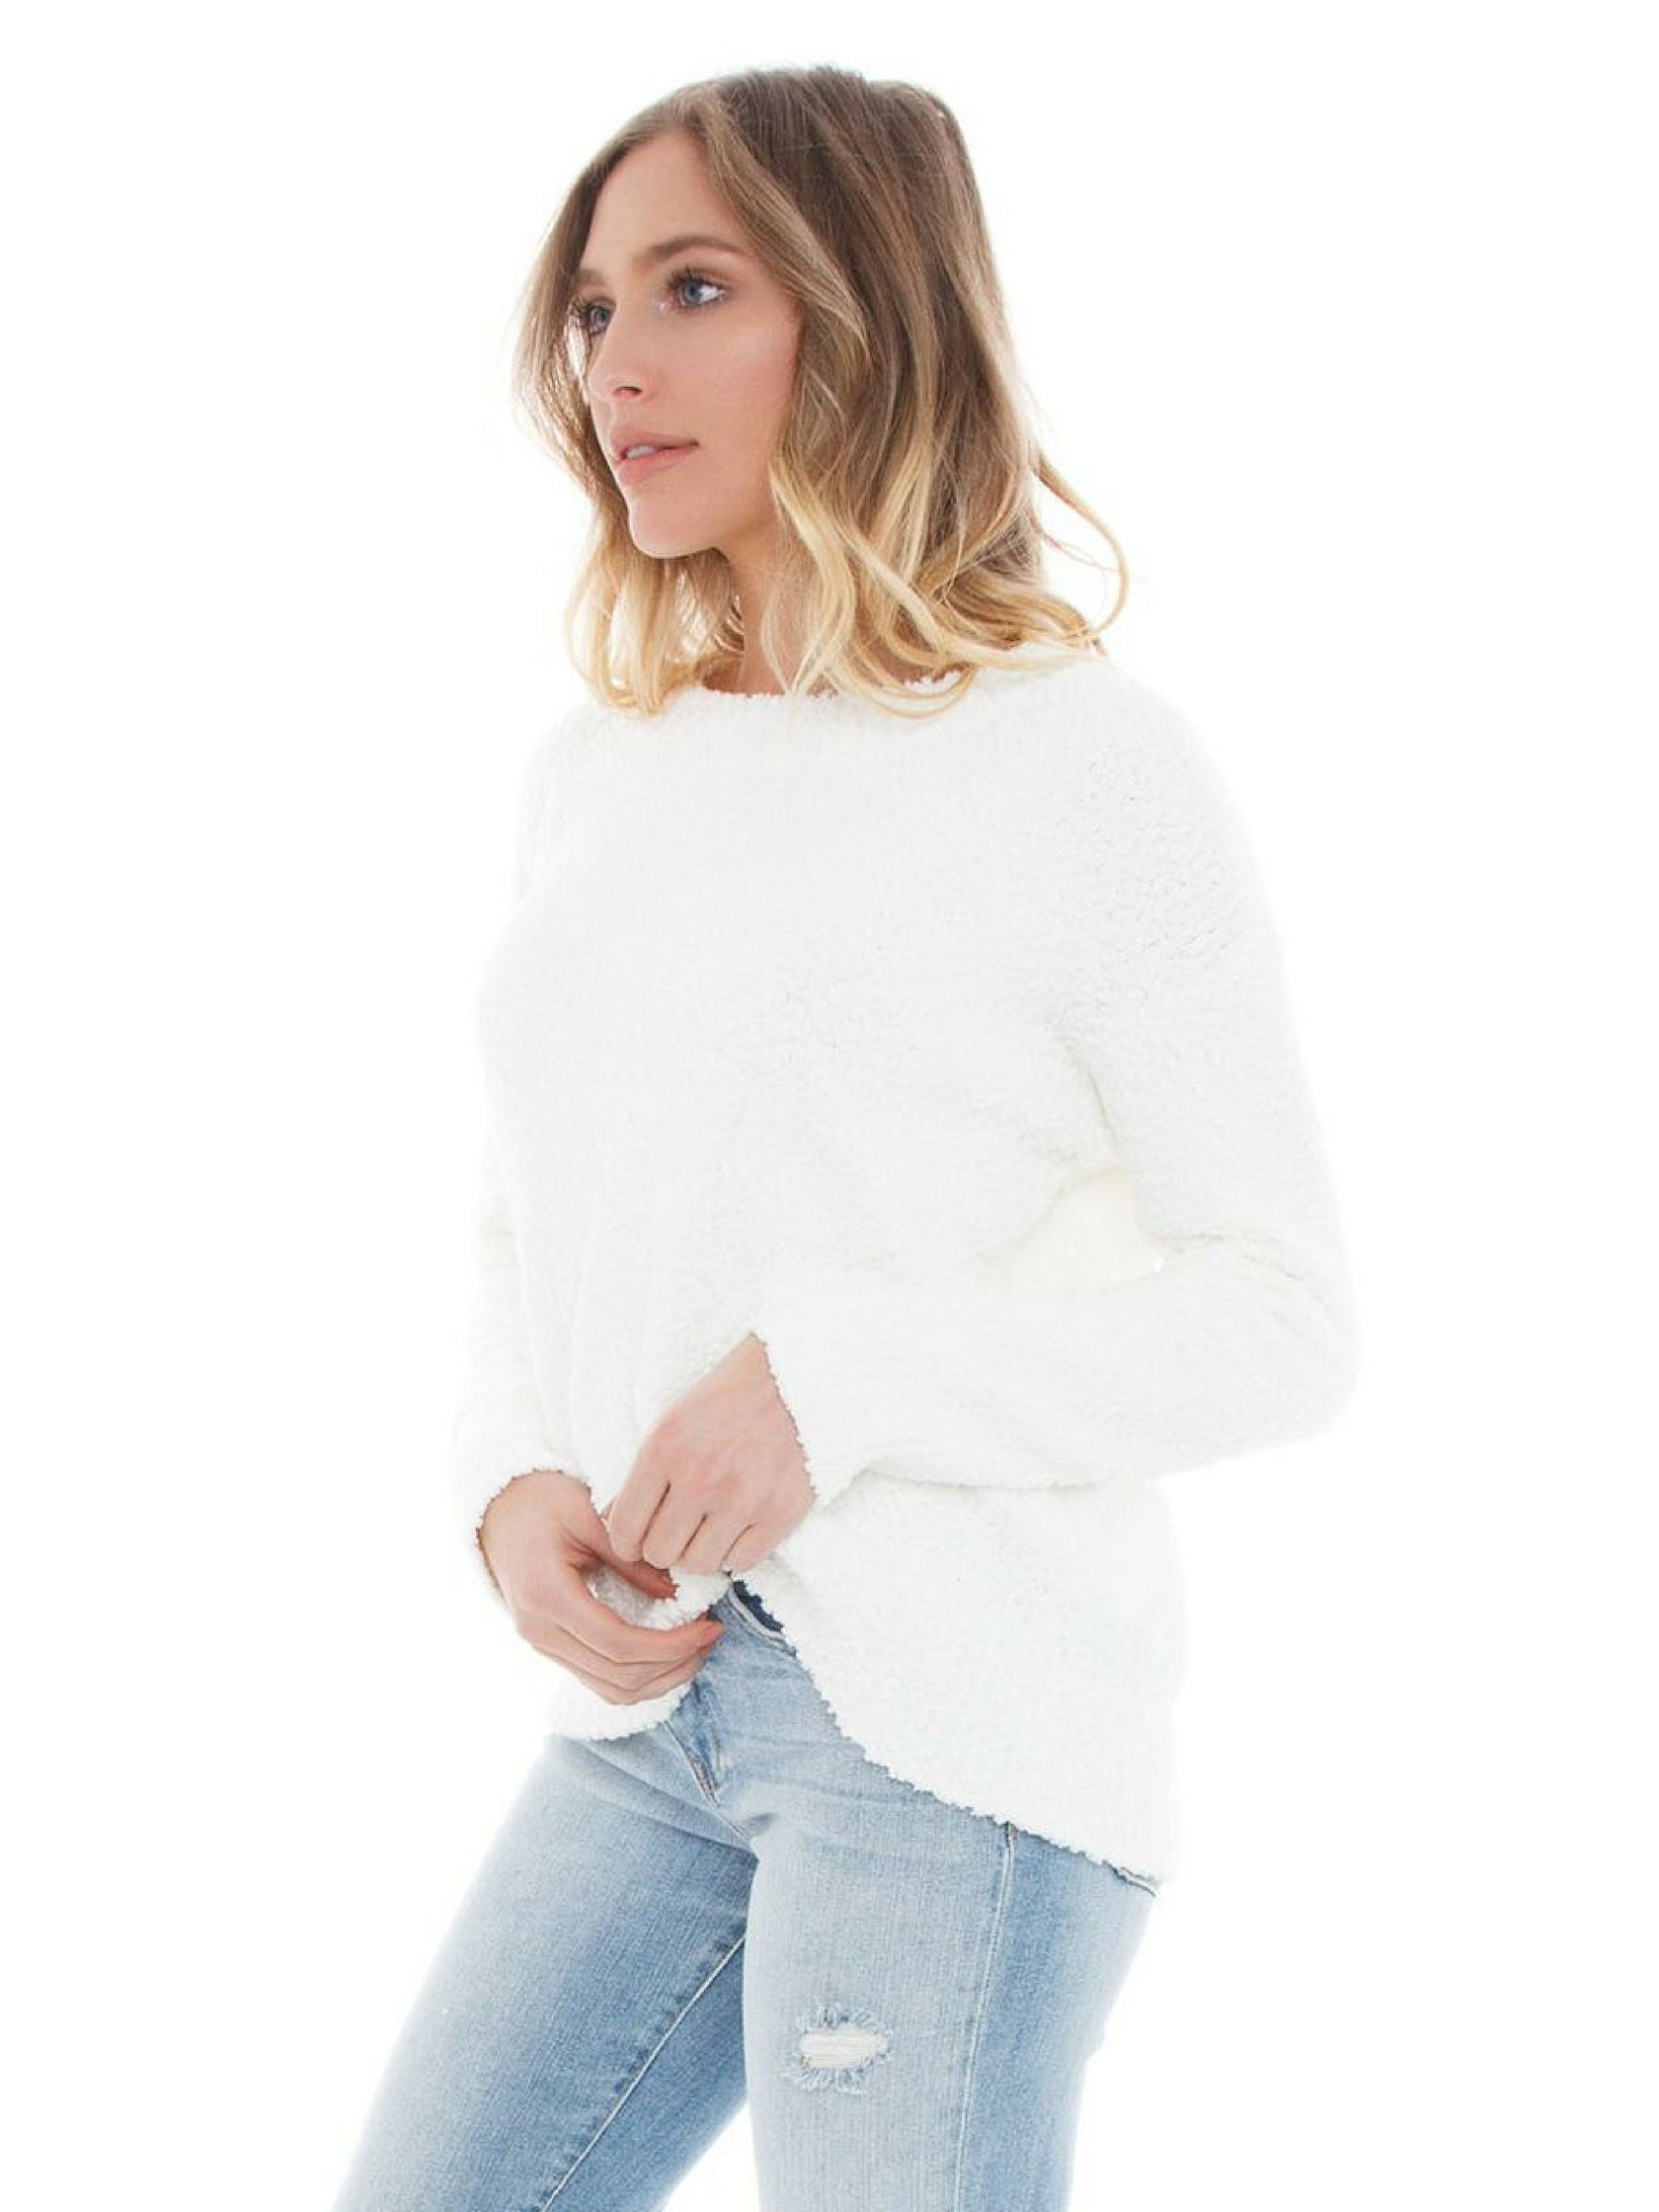 Women wearing a sweater rental from SANCTUARY called Teddy Popover